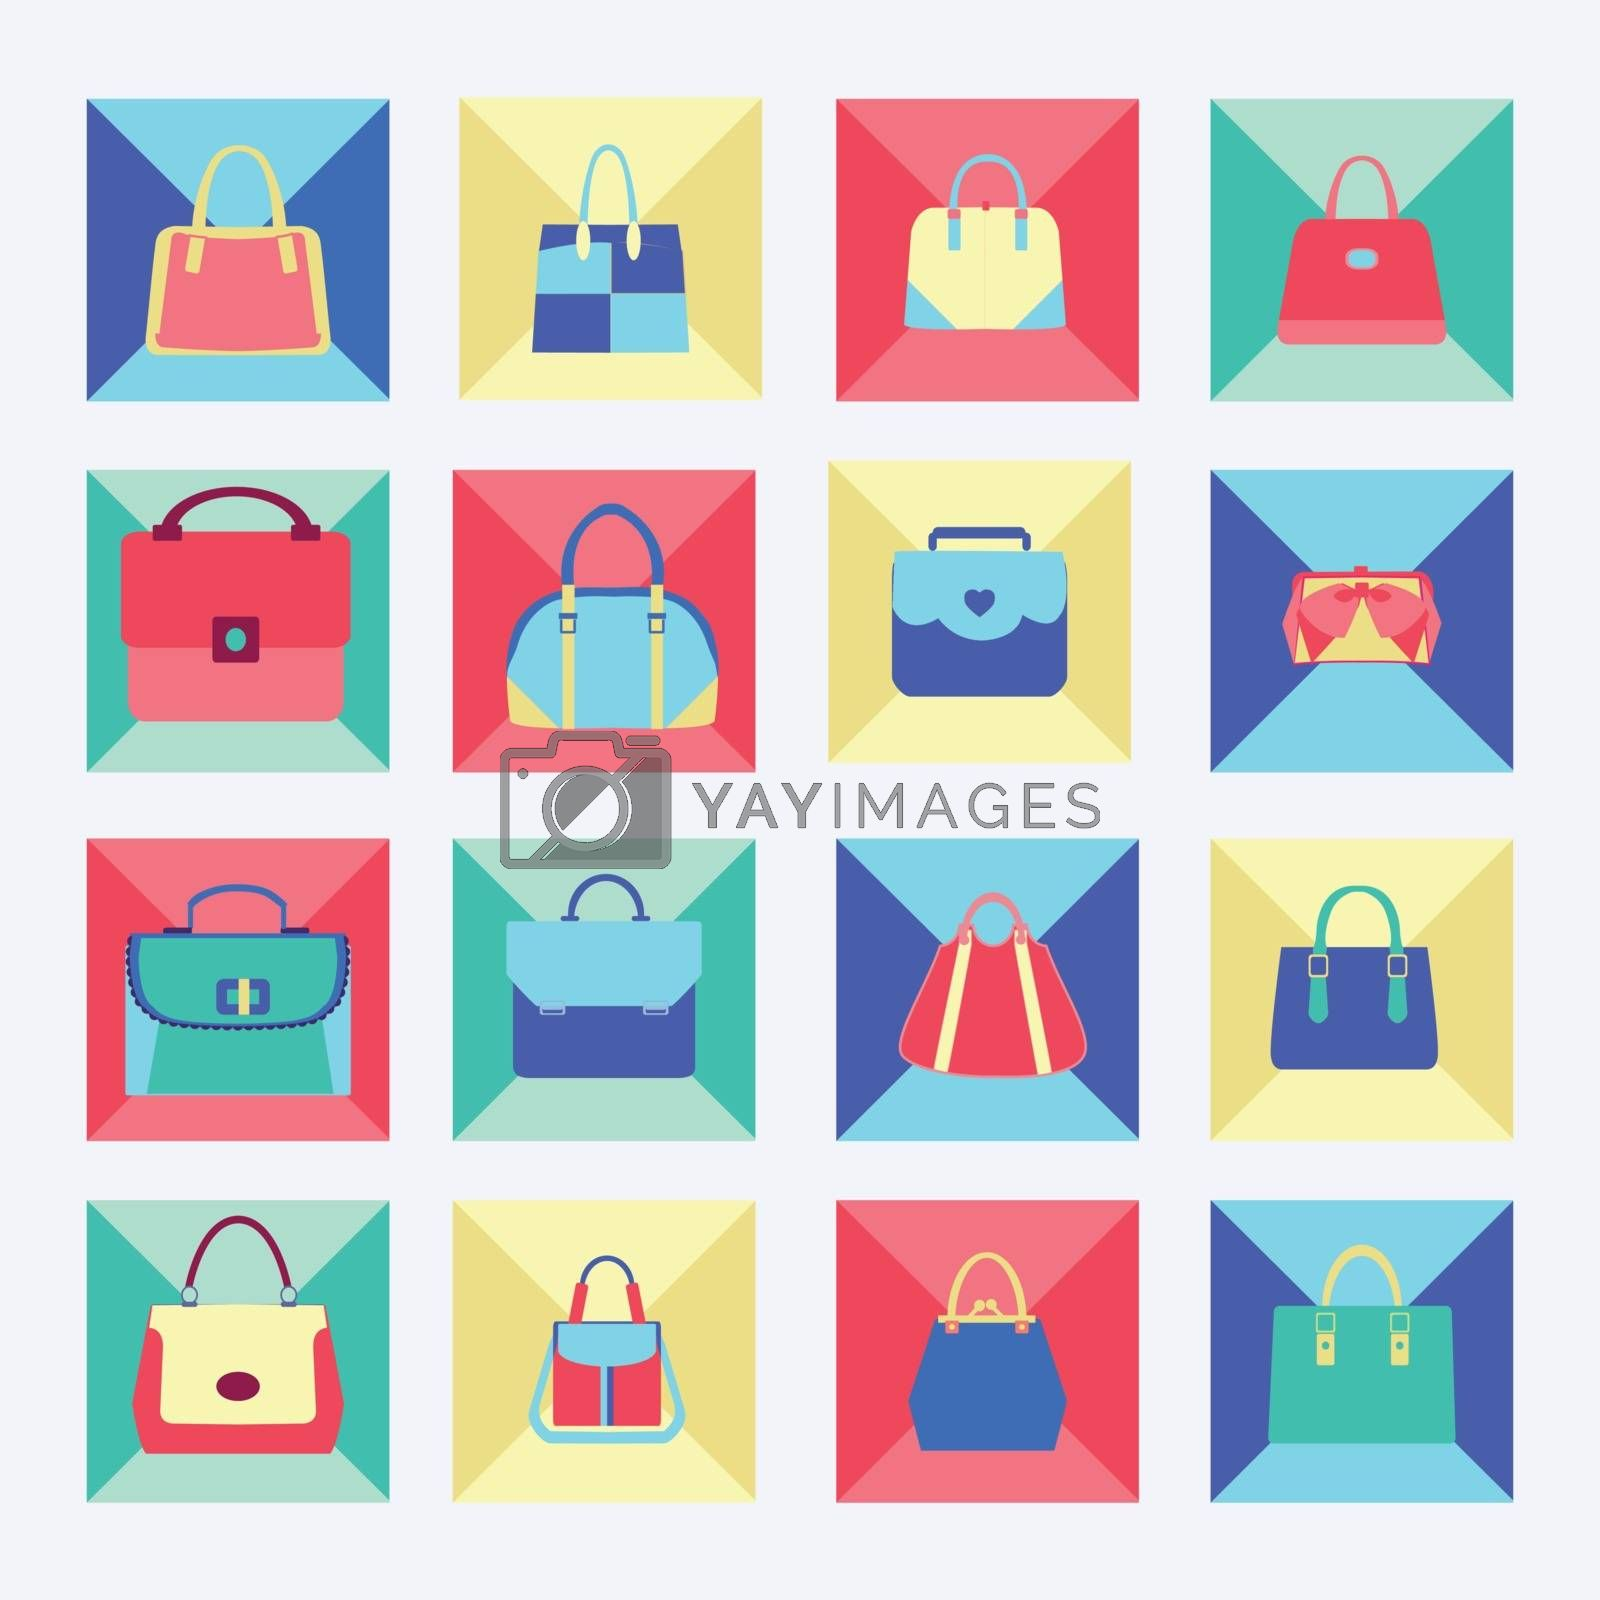 Vector Set icon of collection of Women fashion bags in Flat design illustration